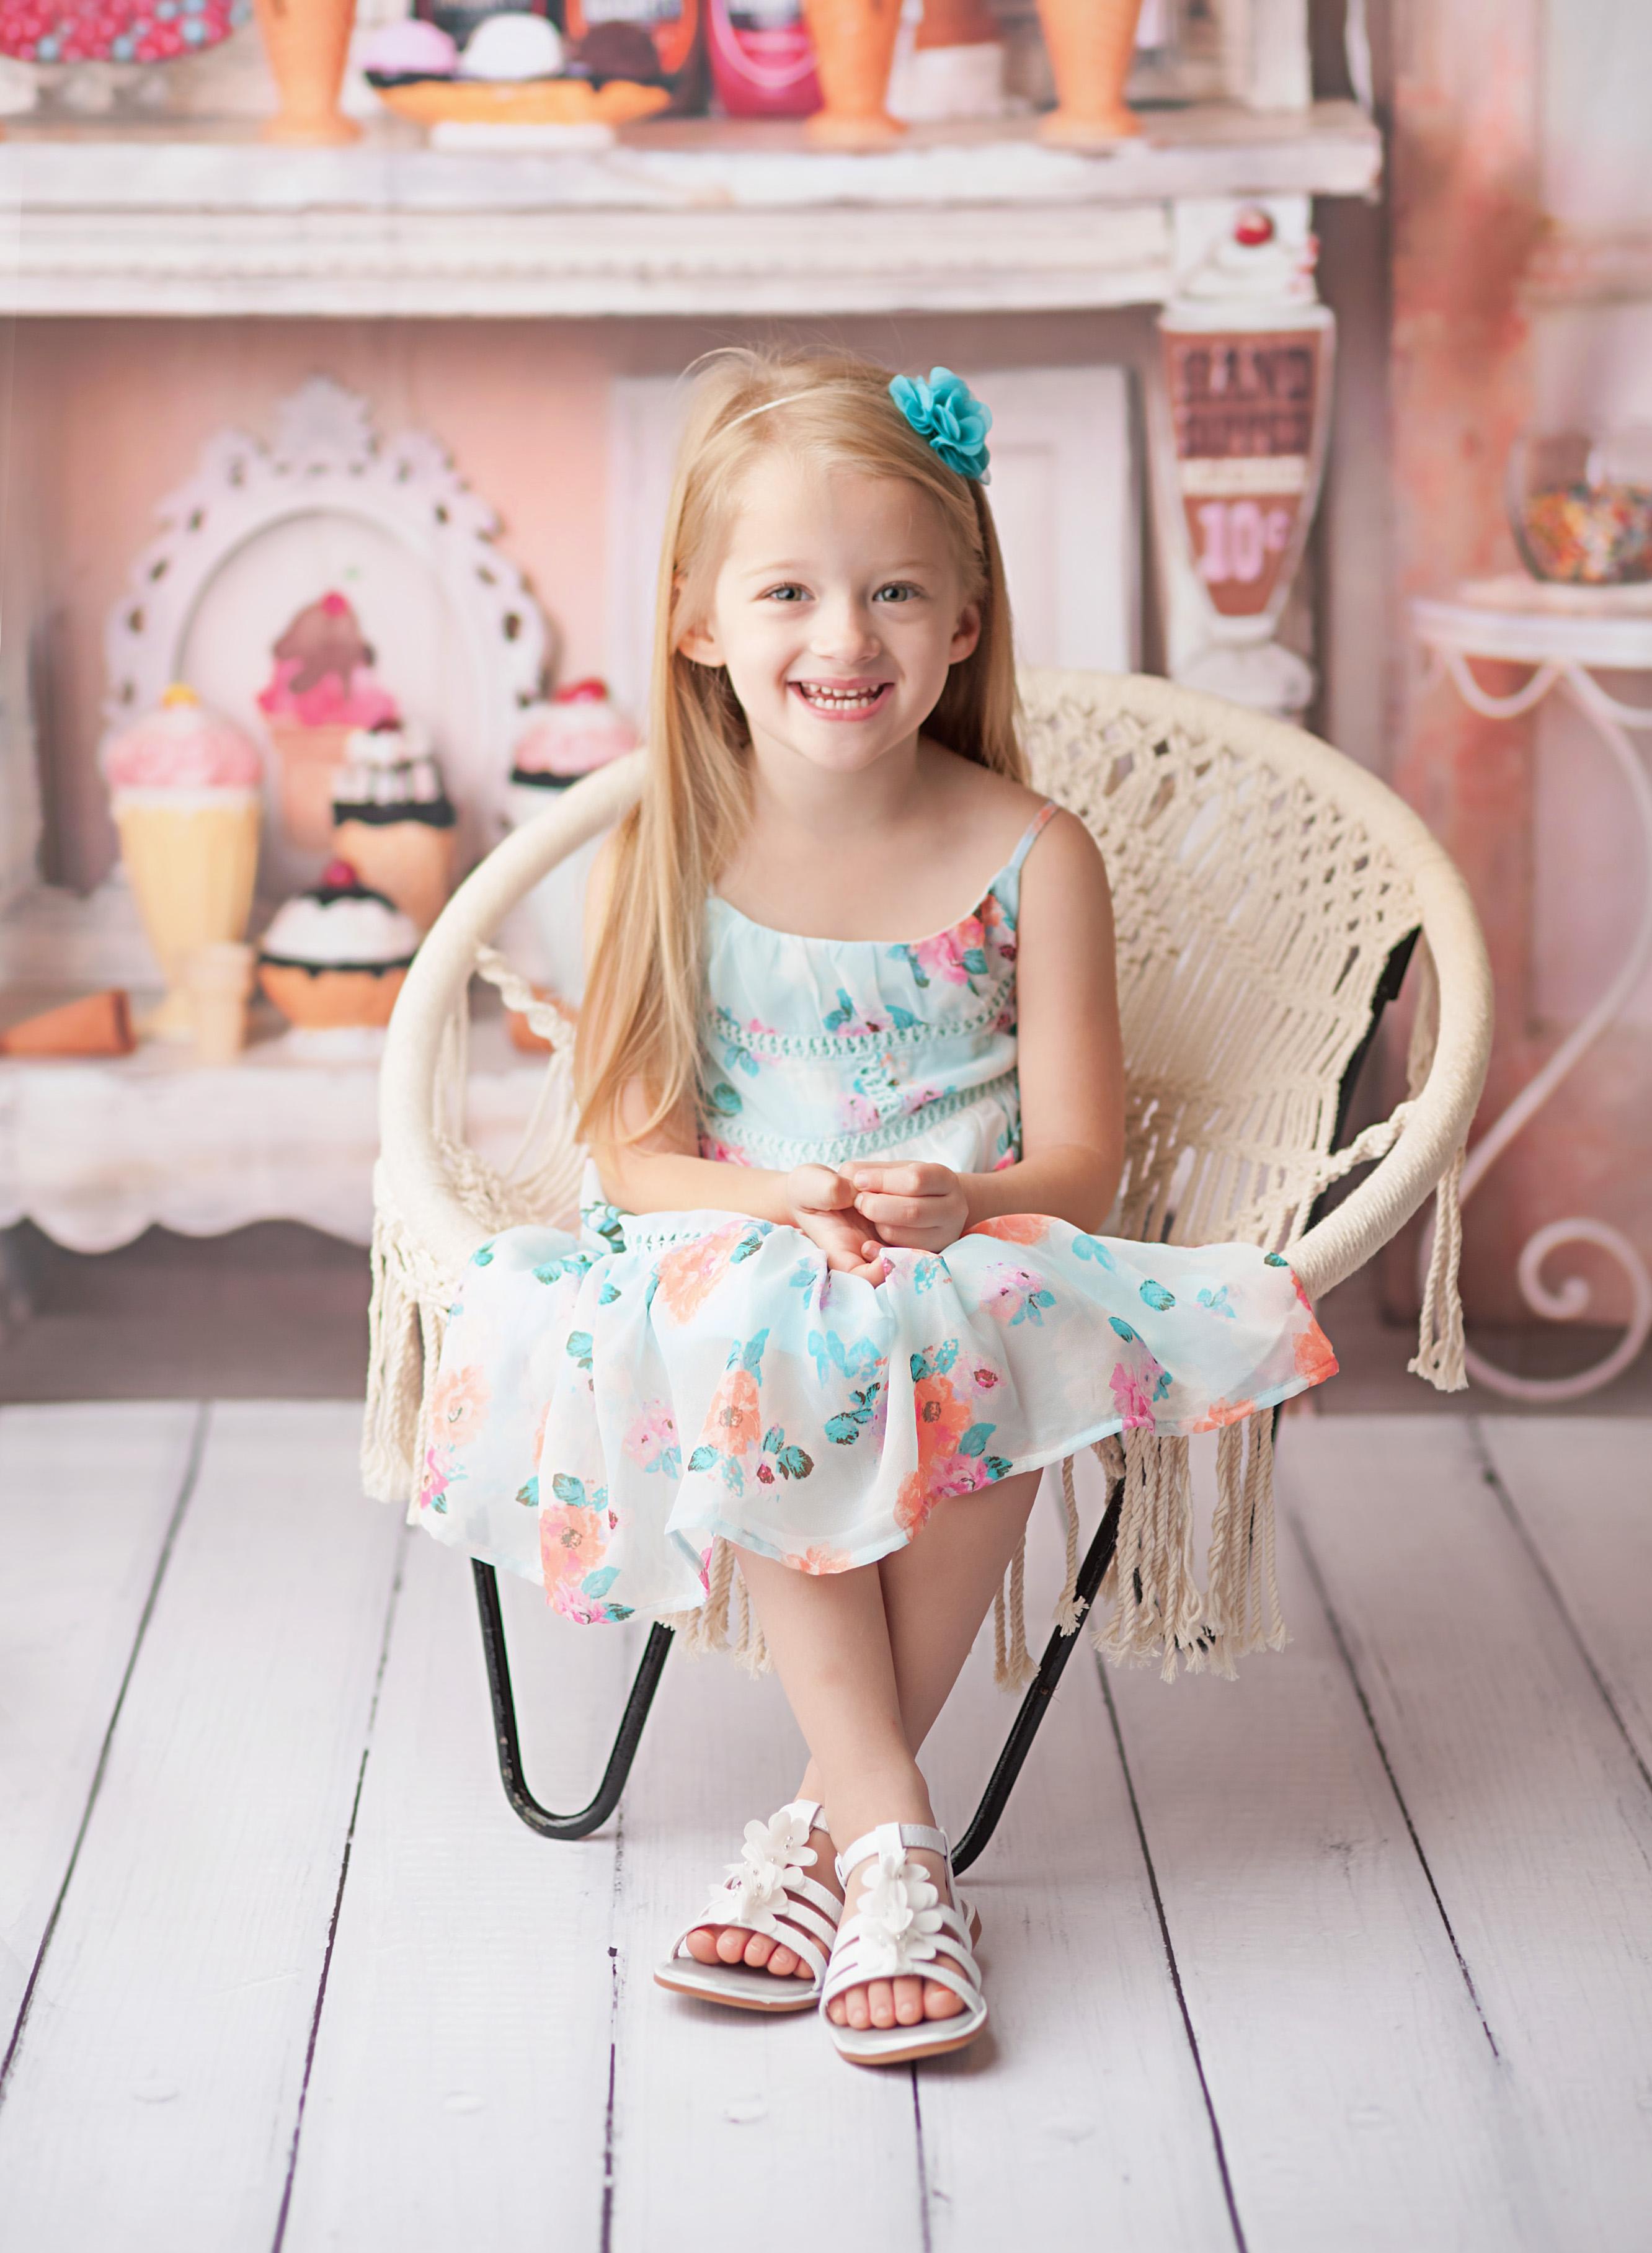 girl sitting in chair against ice cream backdrop